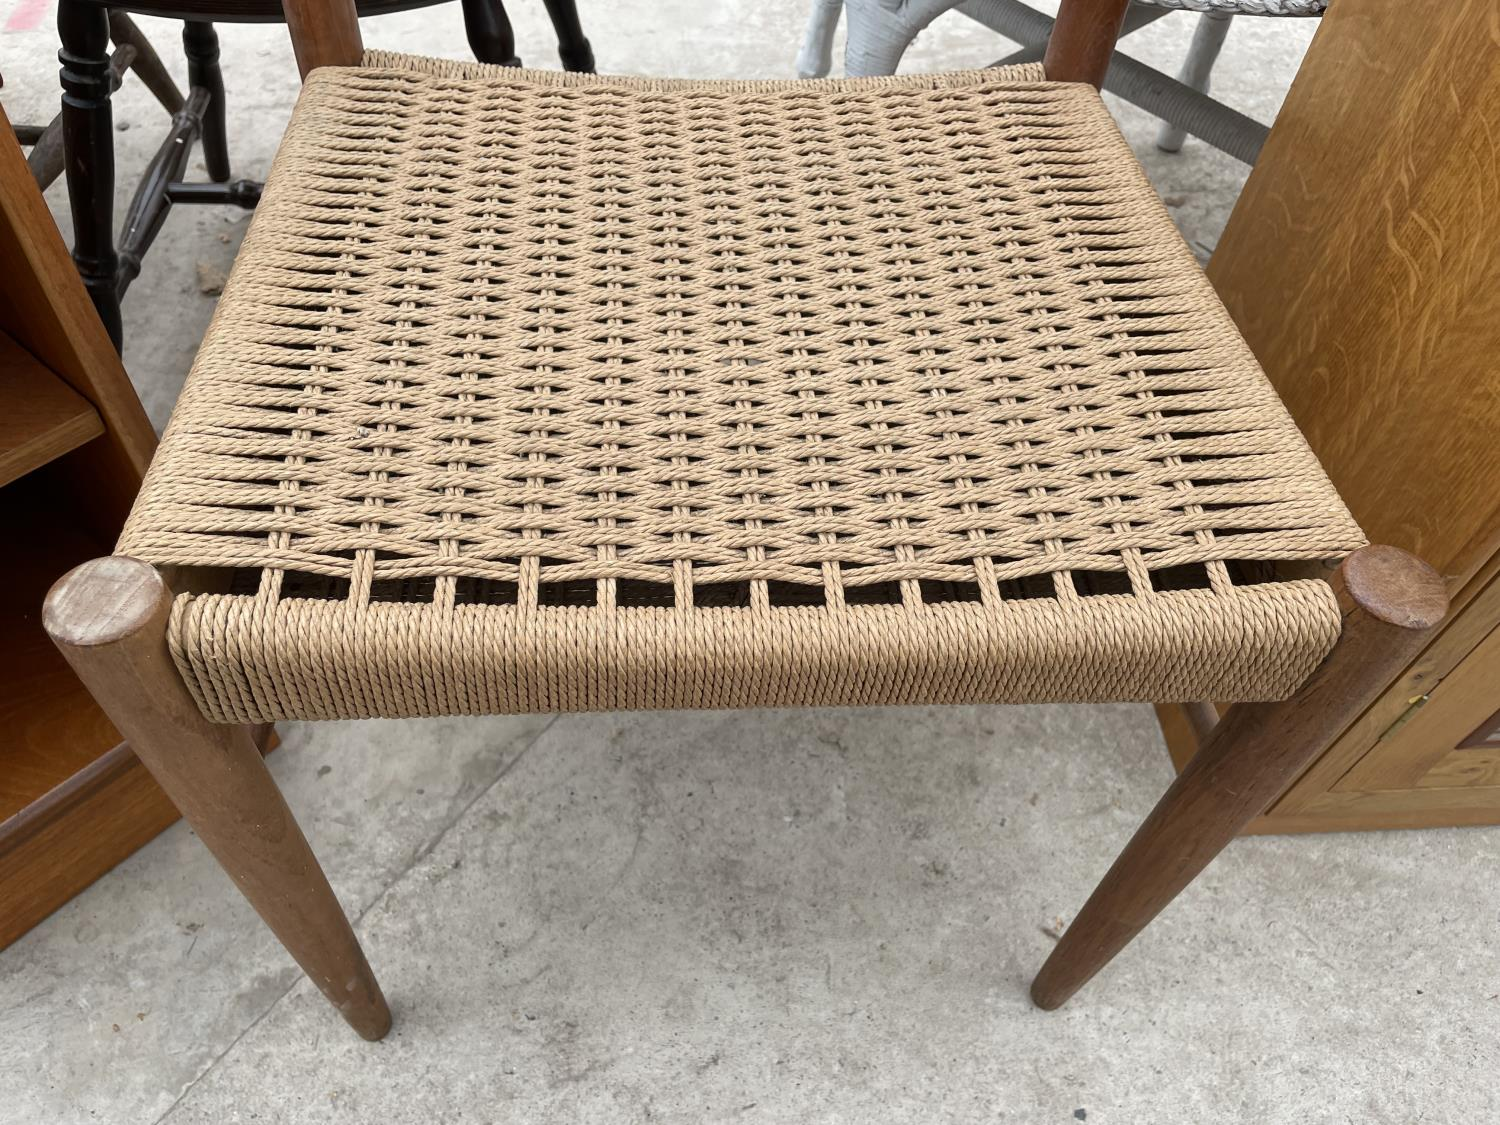 A RETRO TEAK SINGLE DINING CHAIR WITH RATTAN SEAT - Image 3 of 3